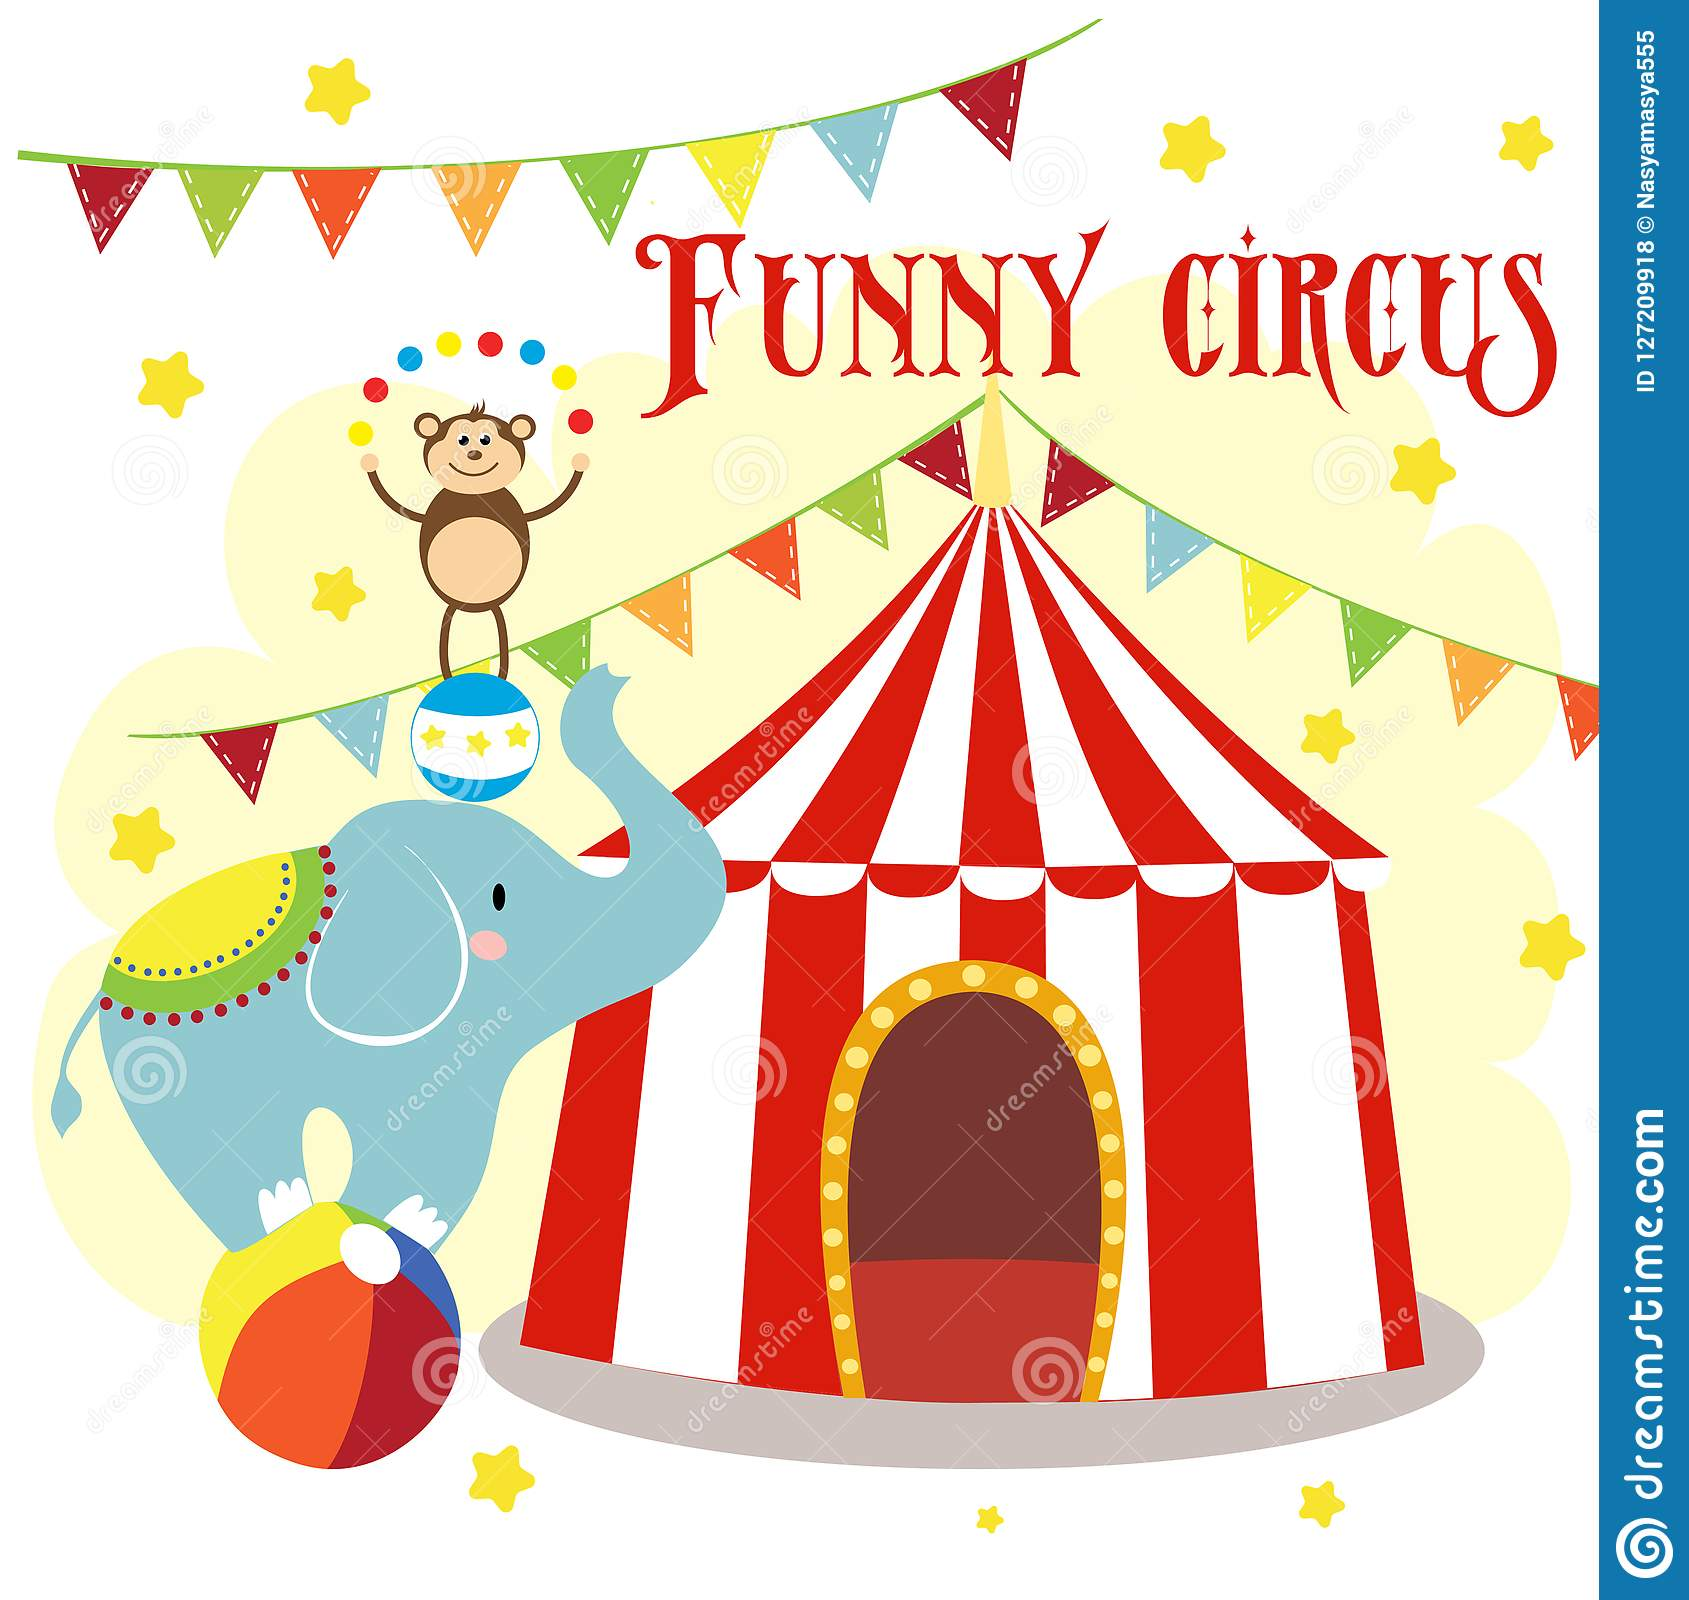 Carnival with striped tents, cheerful circus, elephant, lion and monkey.